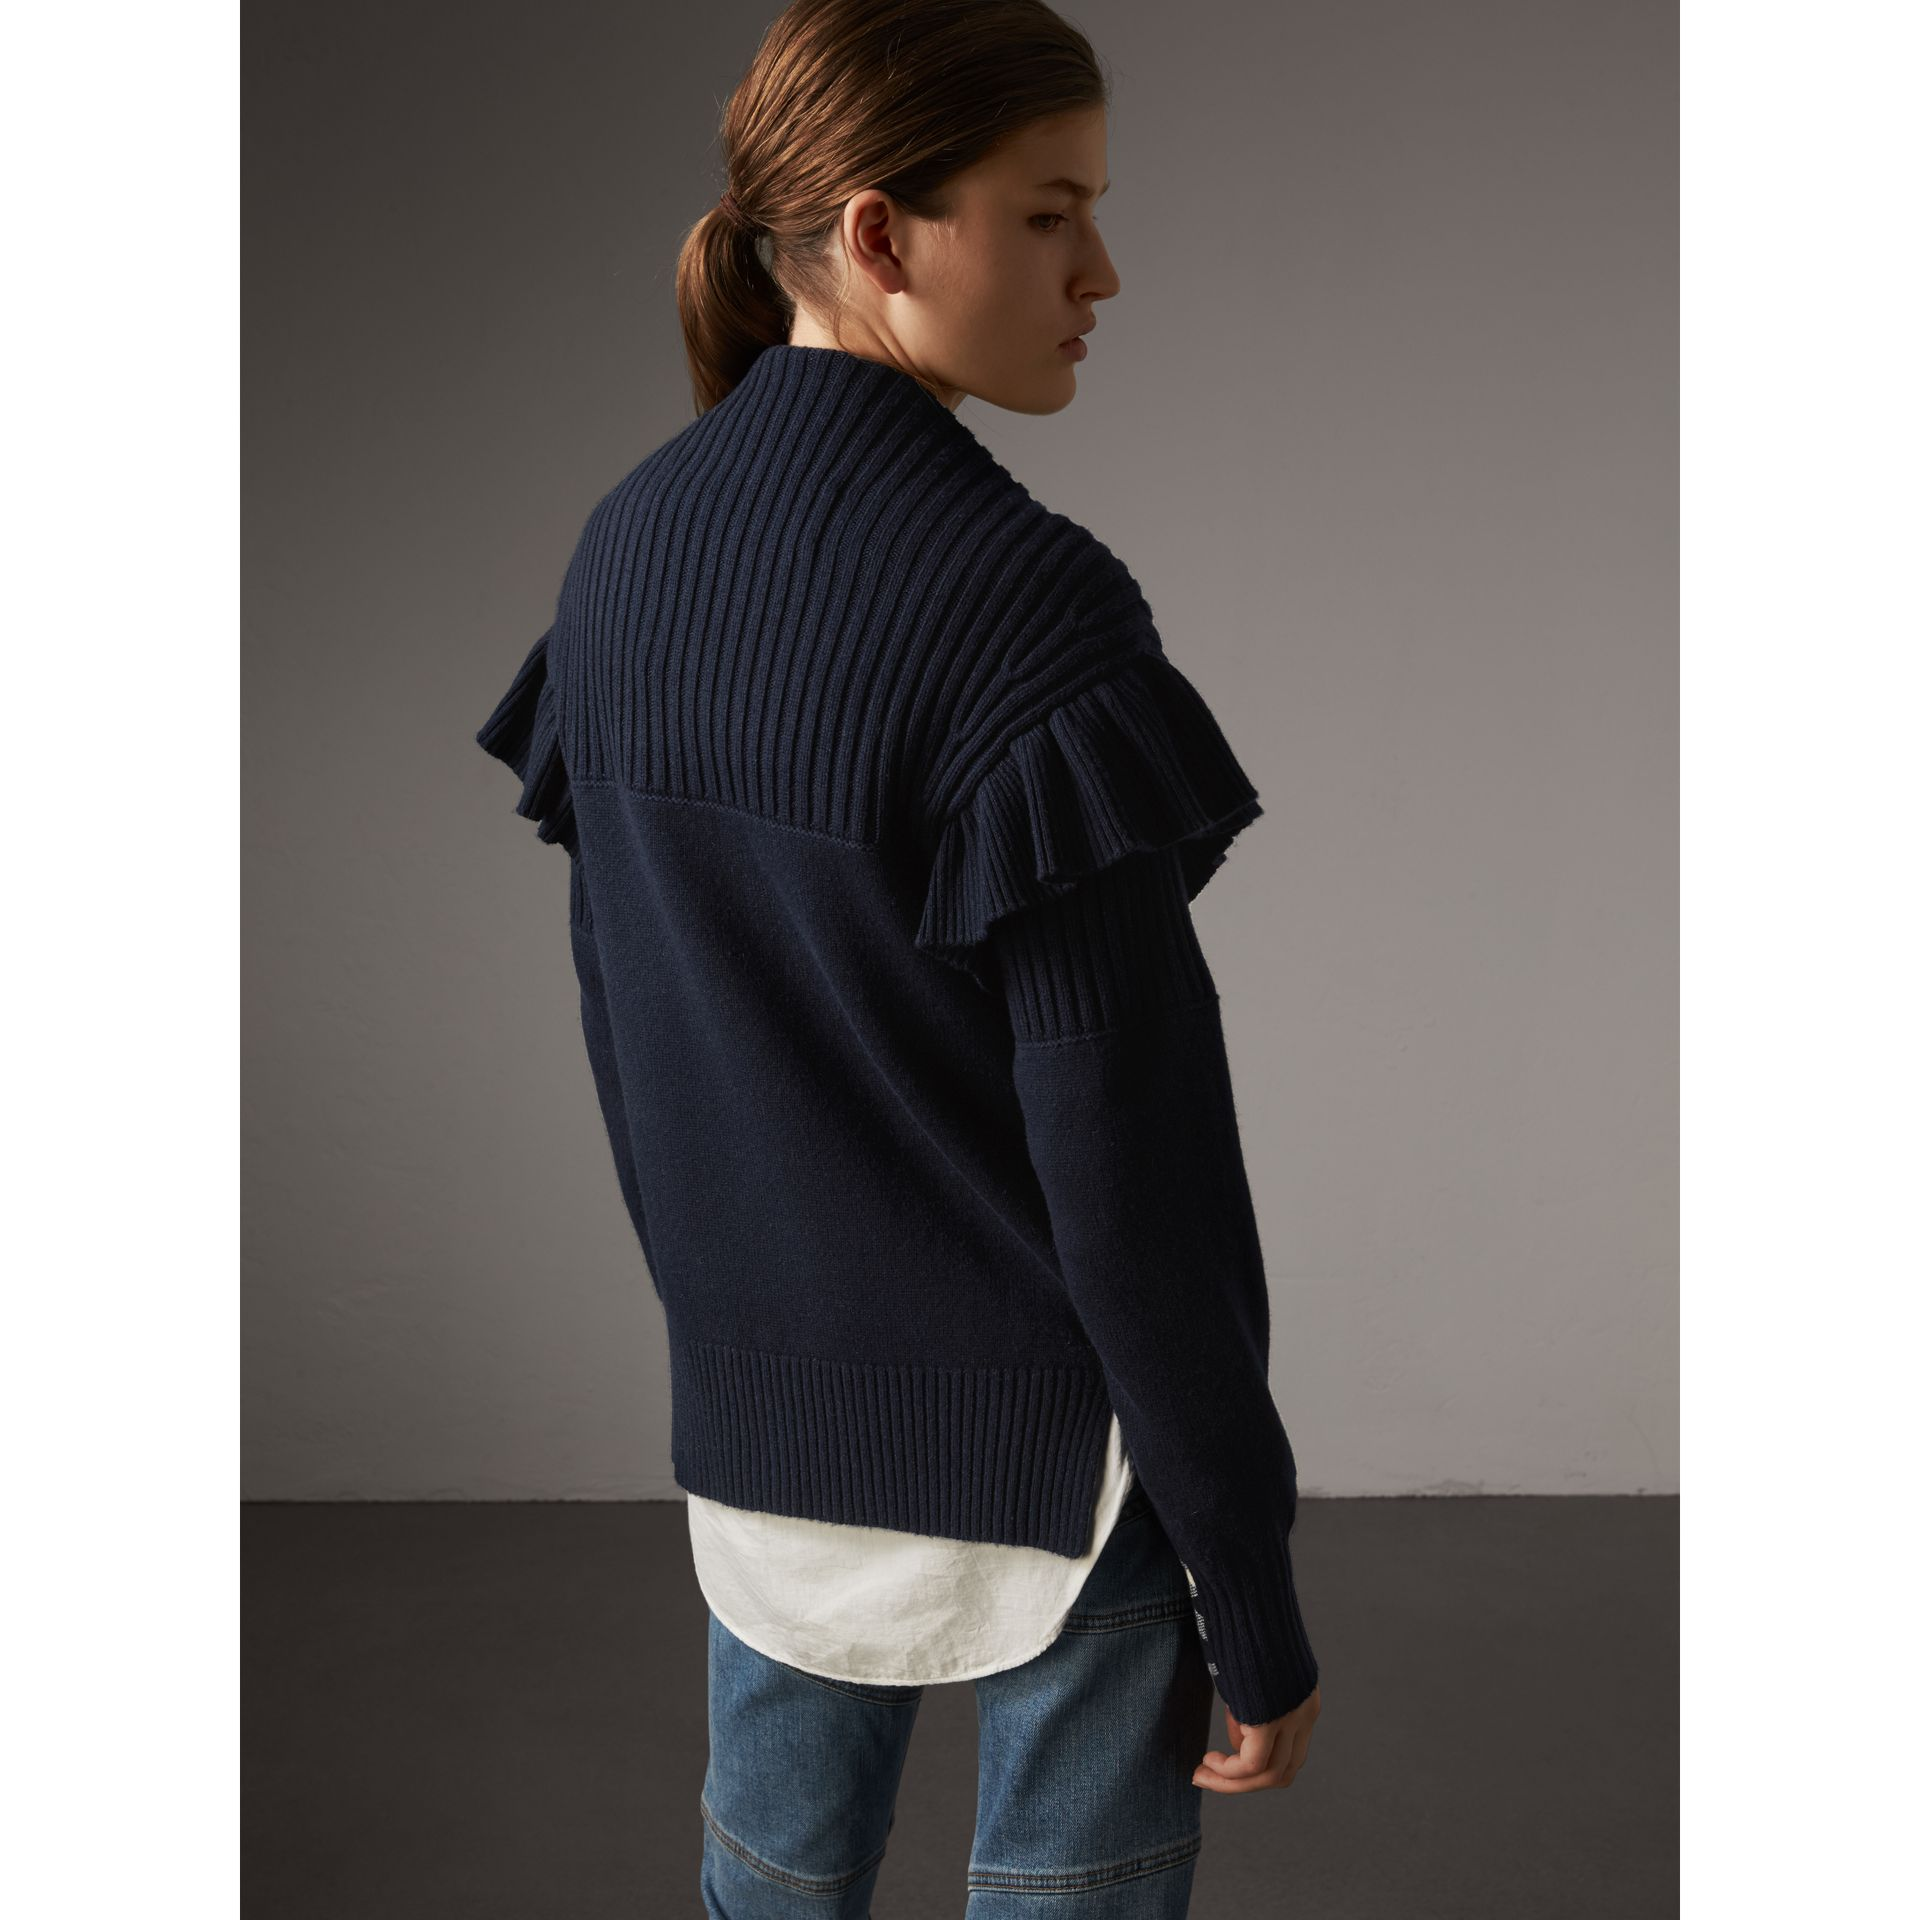 Ruffle Detail Wool Cashmere Cardigan in Navy - Women | Burberry - gallery image 3